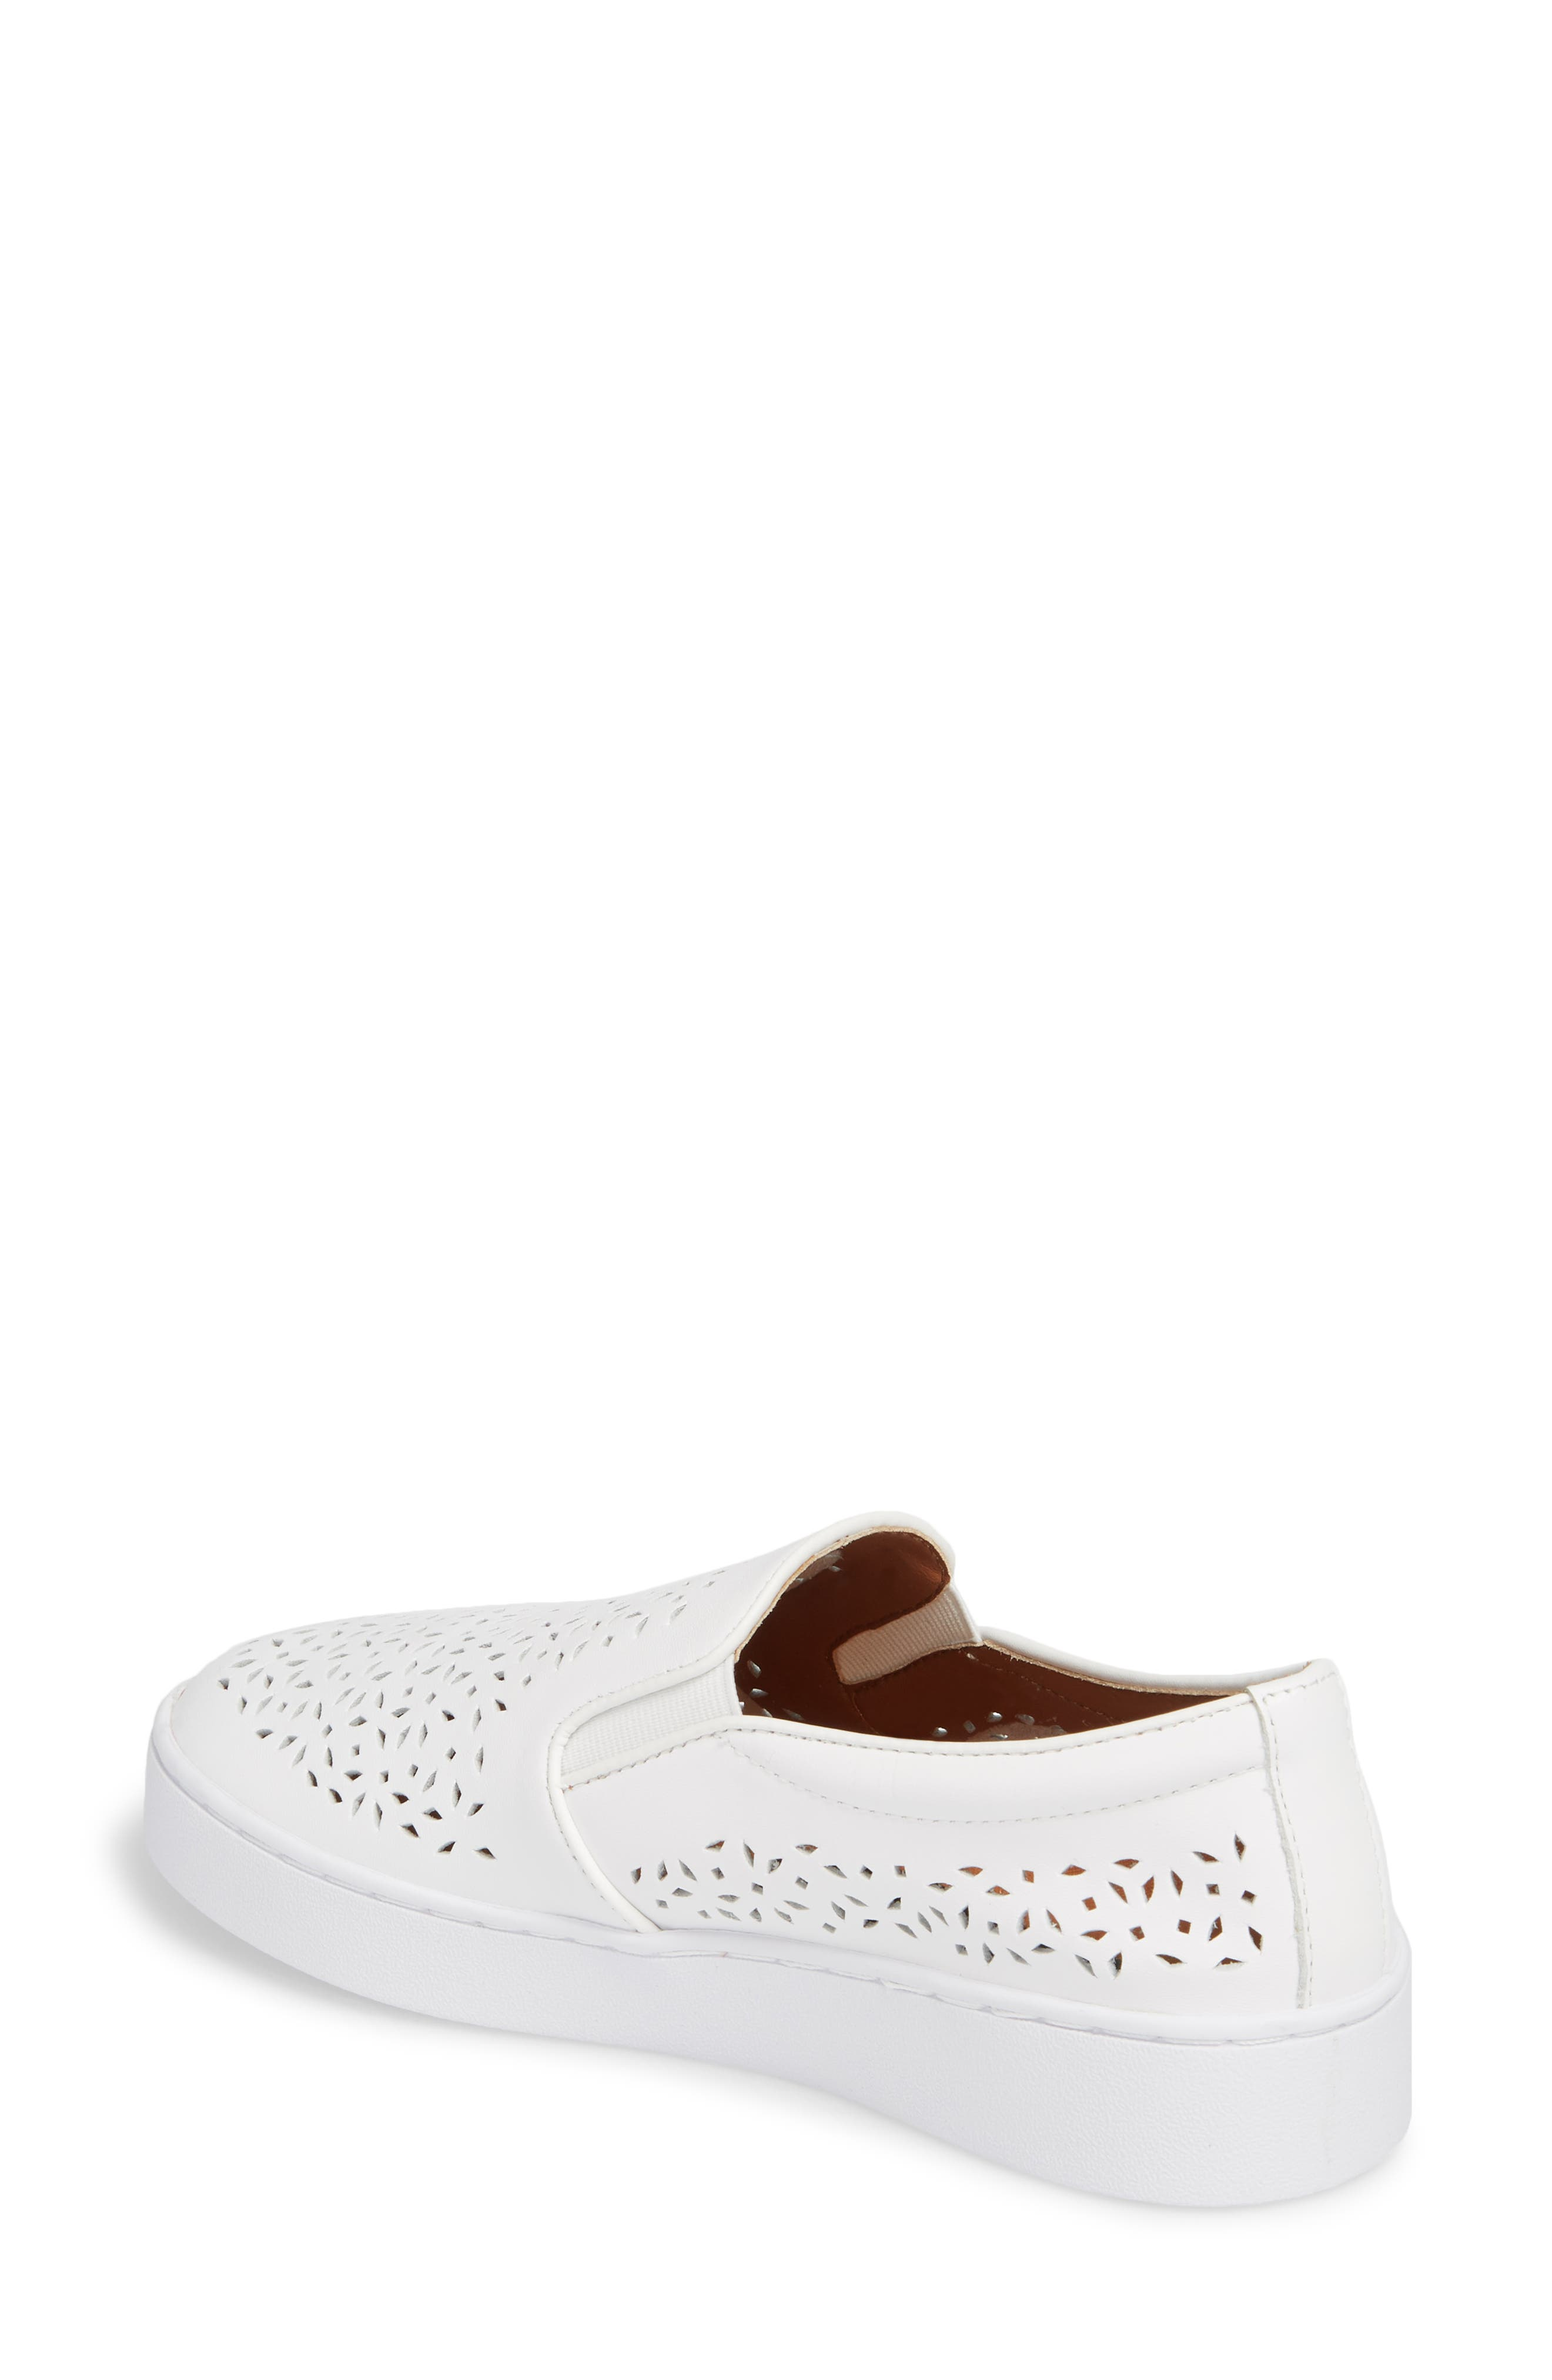 Perforated Slip-On Sneaker,                             Alternate thumbnail 2, color,                             WHITE LEATHER